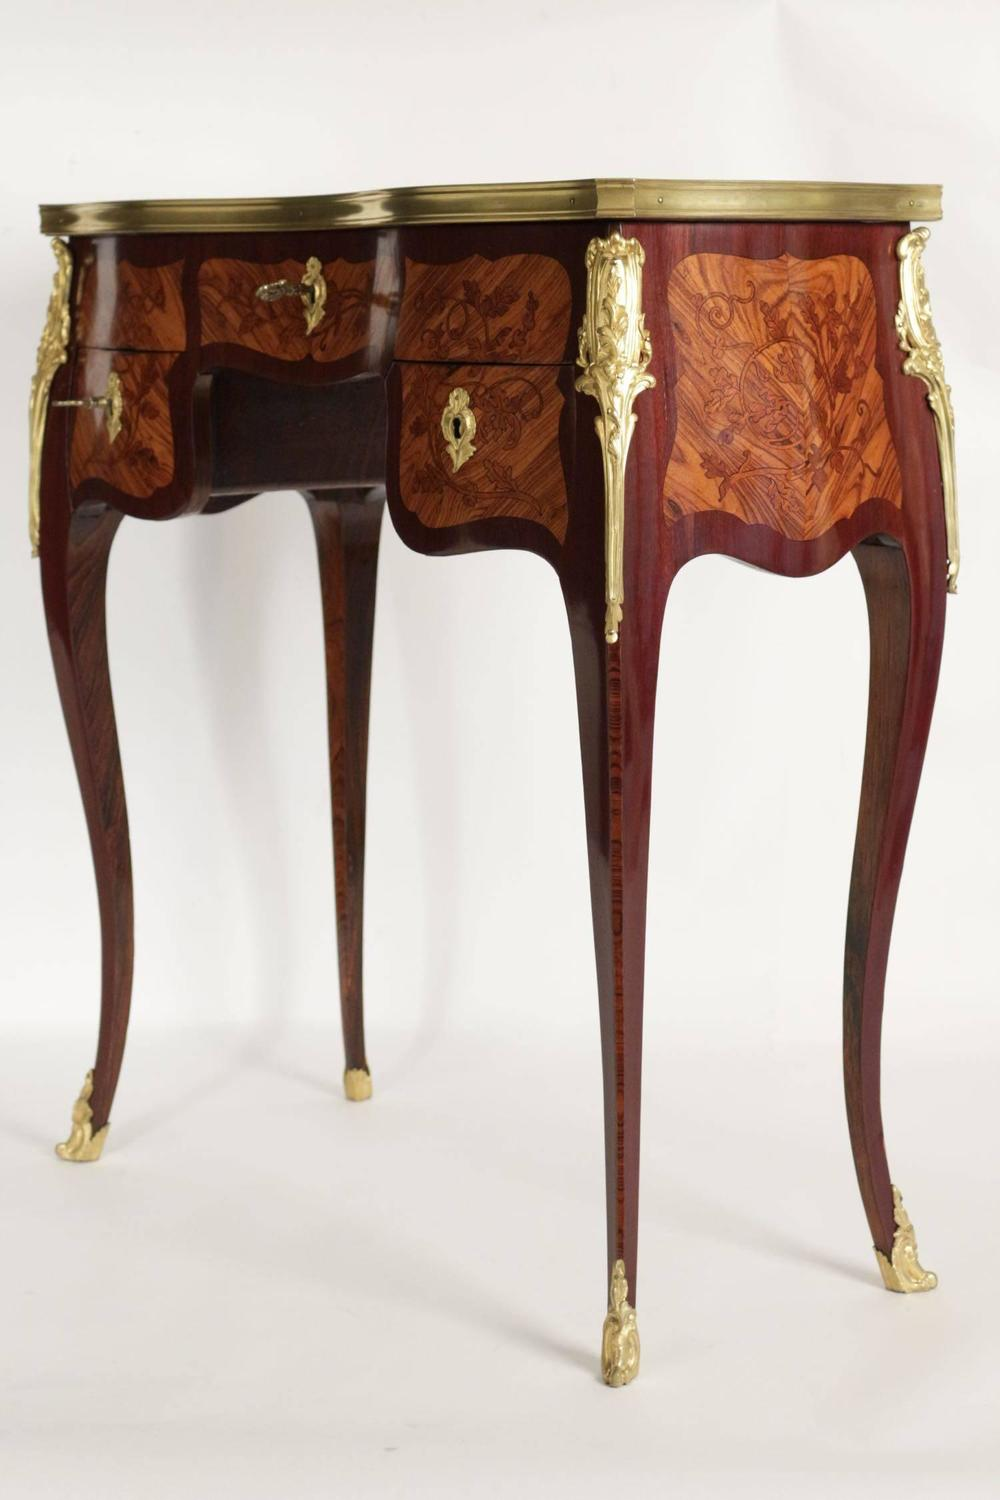 Beautiful Louis Xv Style Desk In Marquetry Of Exotic Wood Inlays 19th Century At 1stdibs